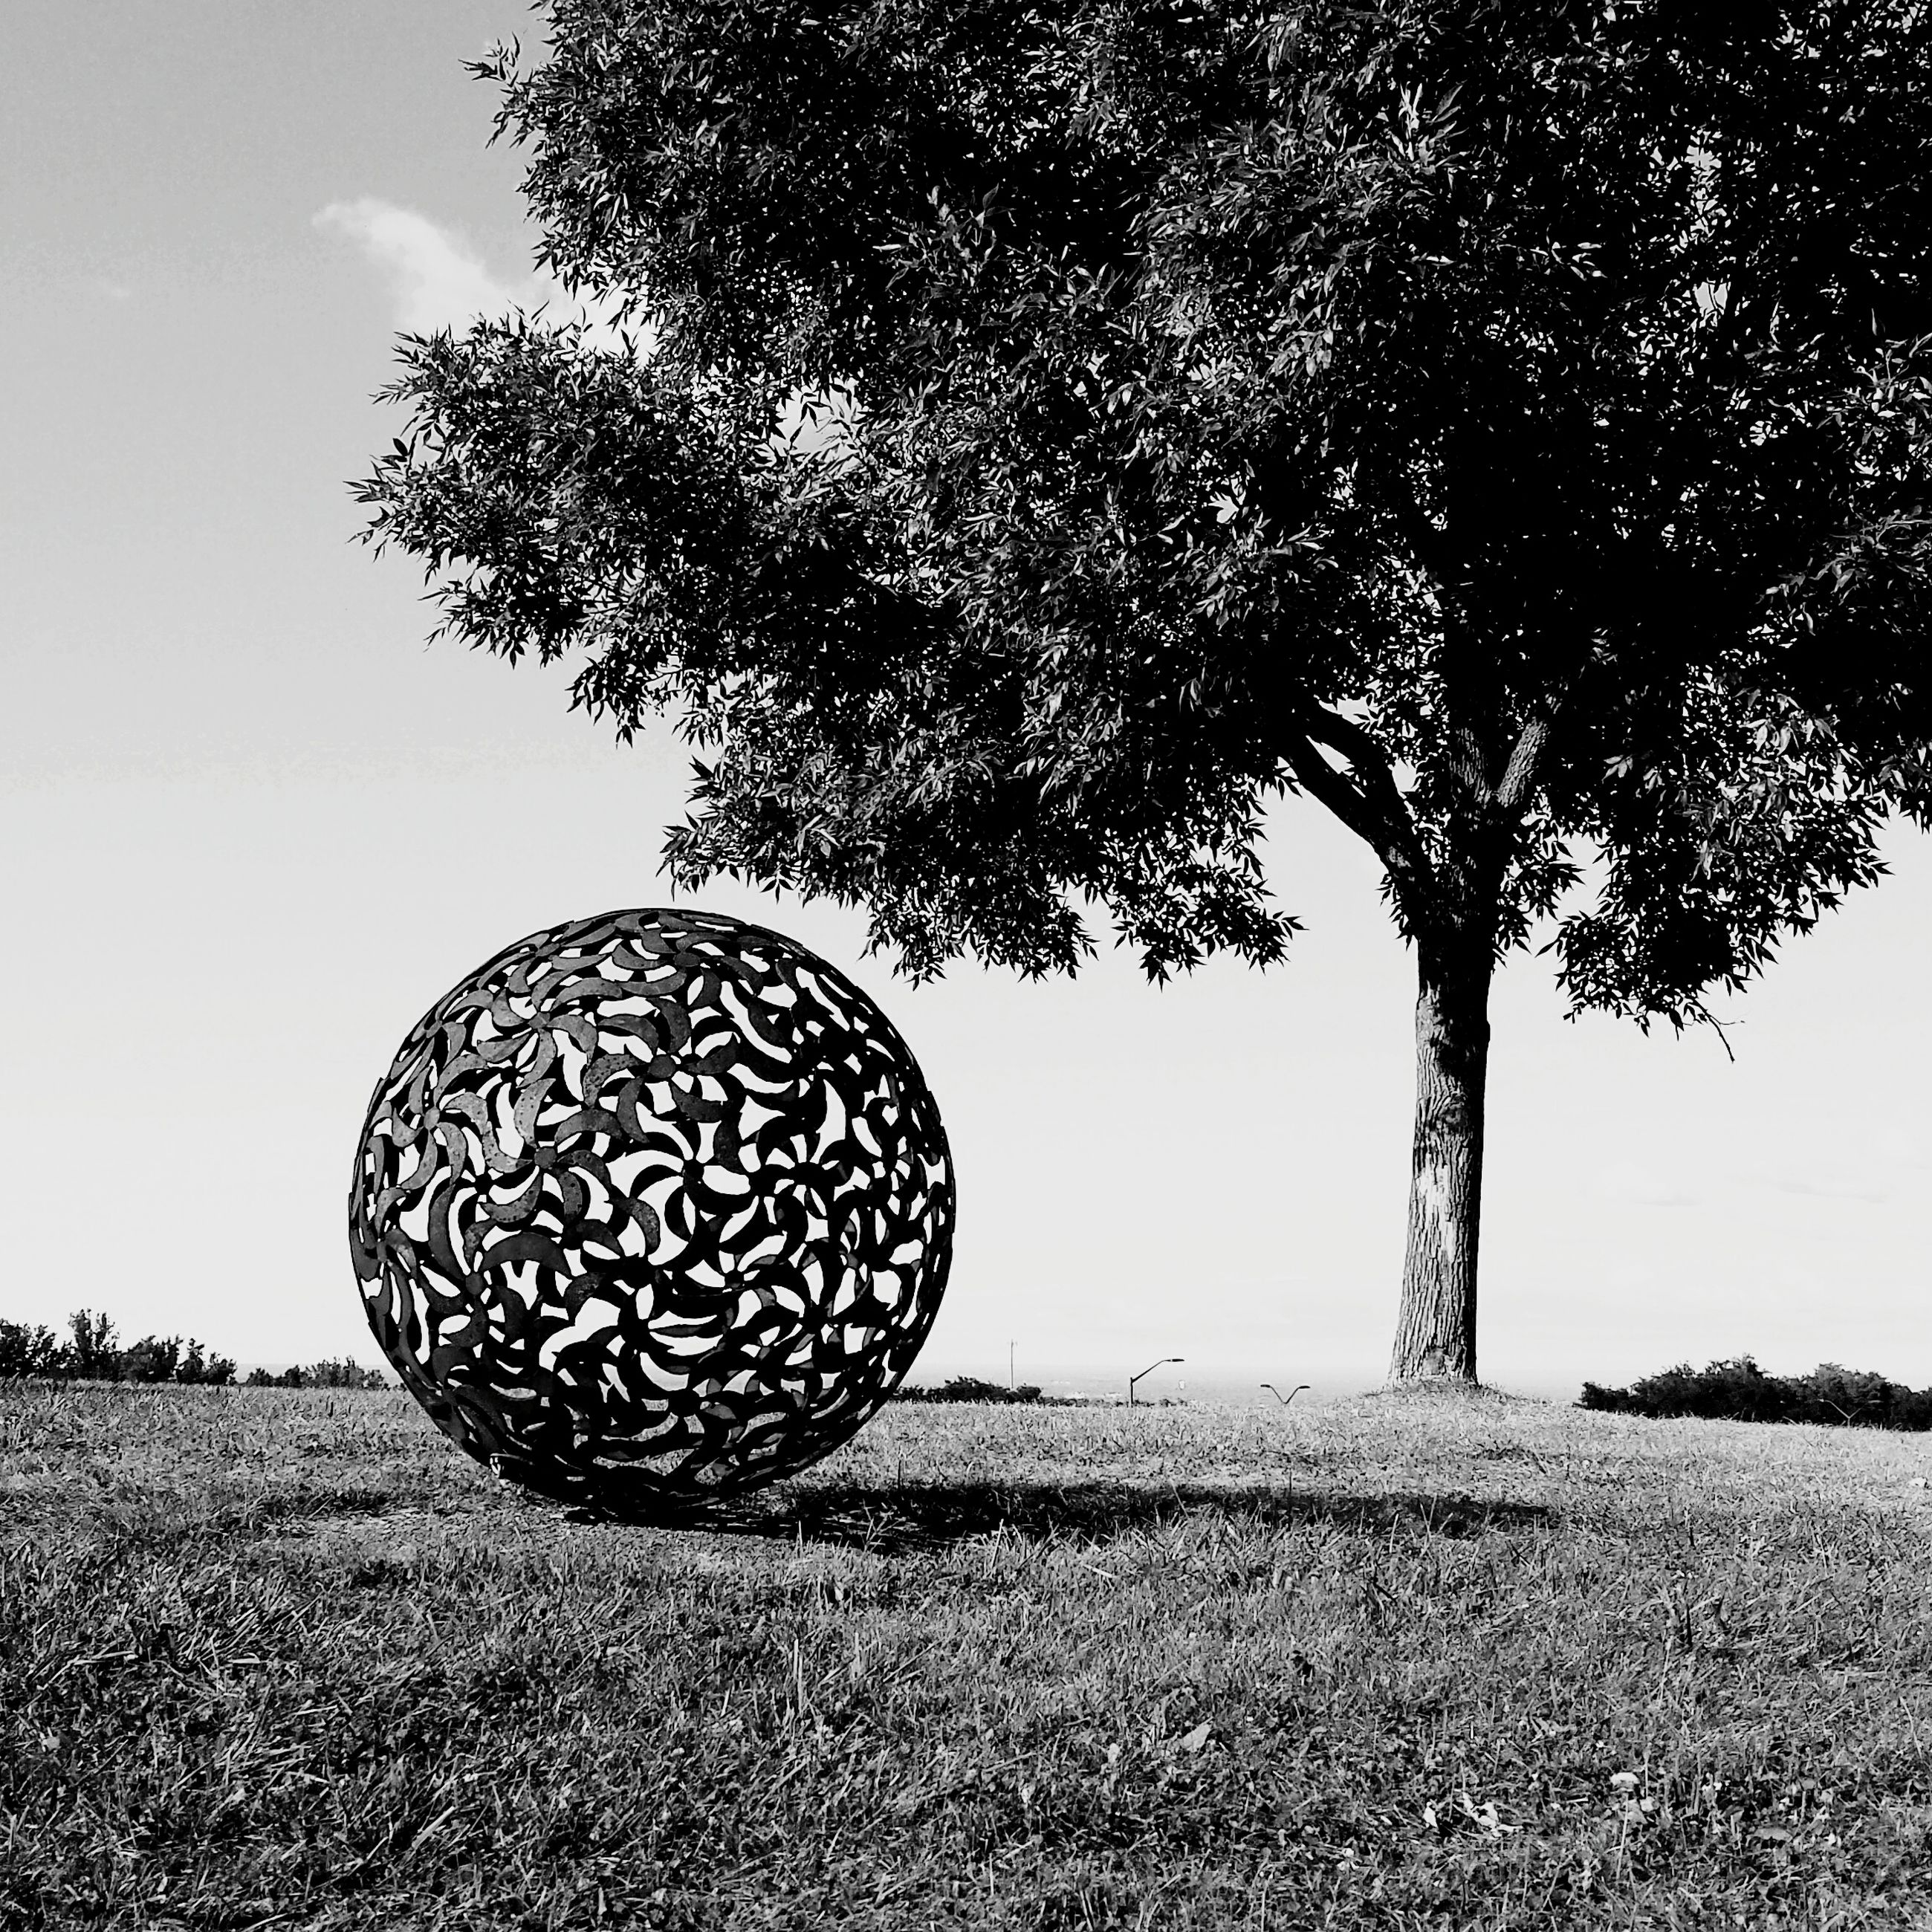 tree, field, tranquility, growth, landscape, tranquil scene, nature, grass, sky, sphere, clear sky, no people, park - man made space, beauty in nature, sunlight, outdoors, day, circle, shadow, grassy